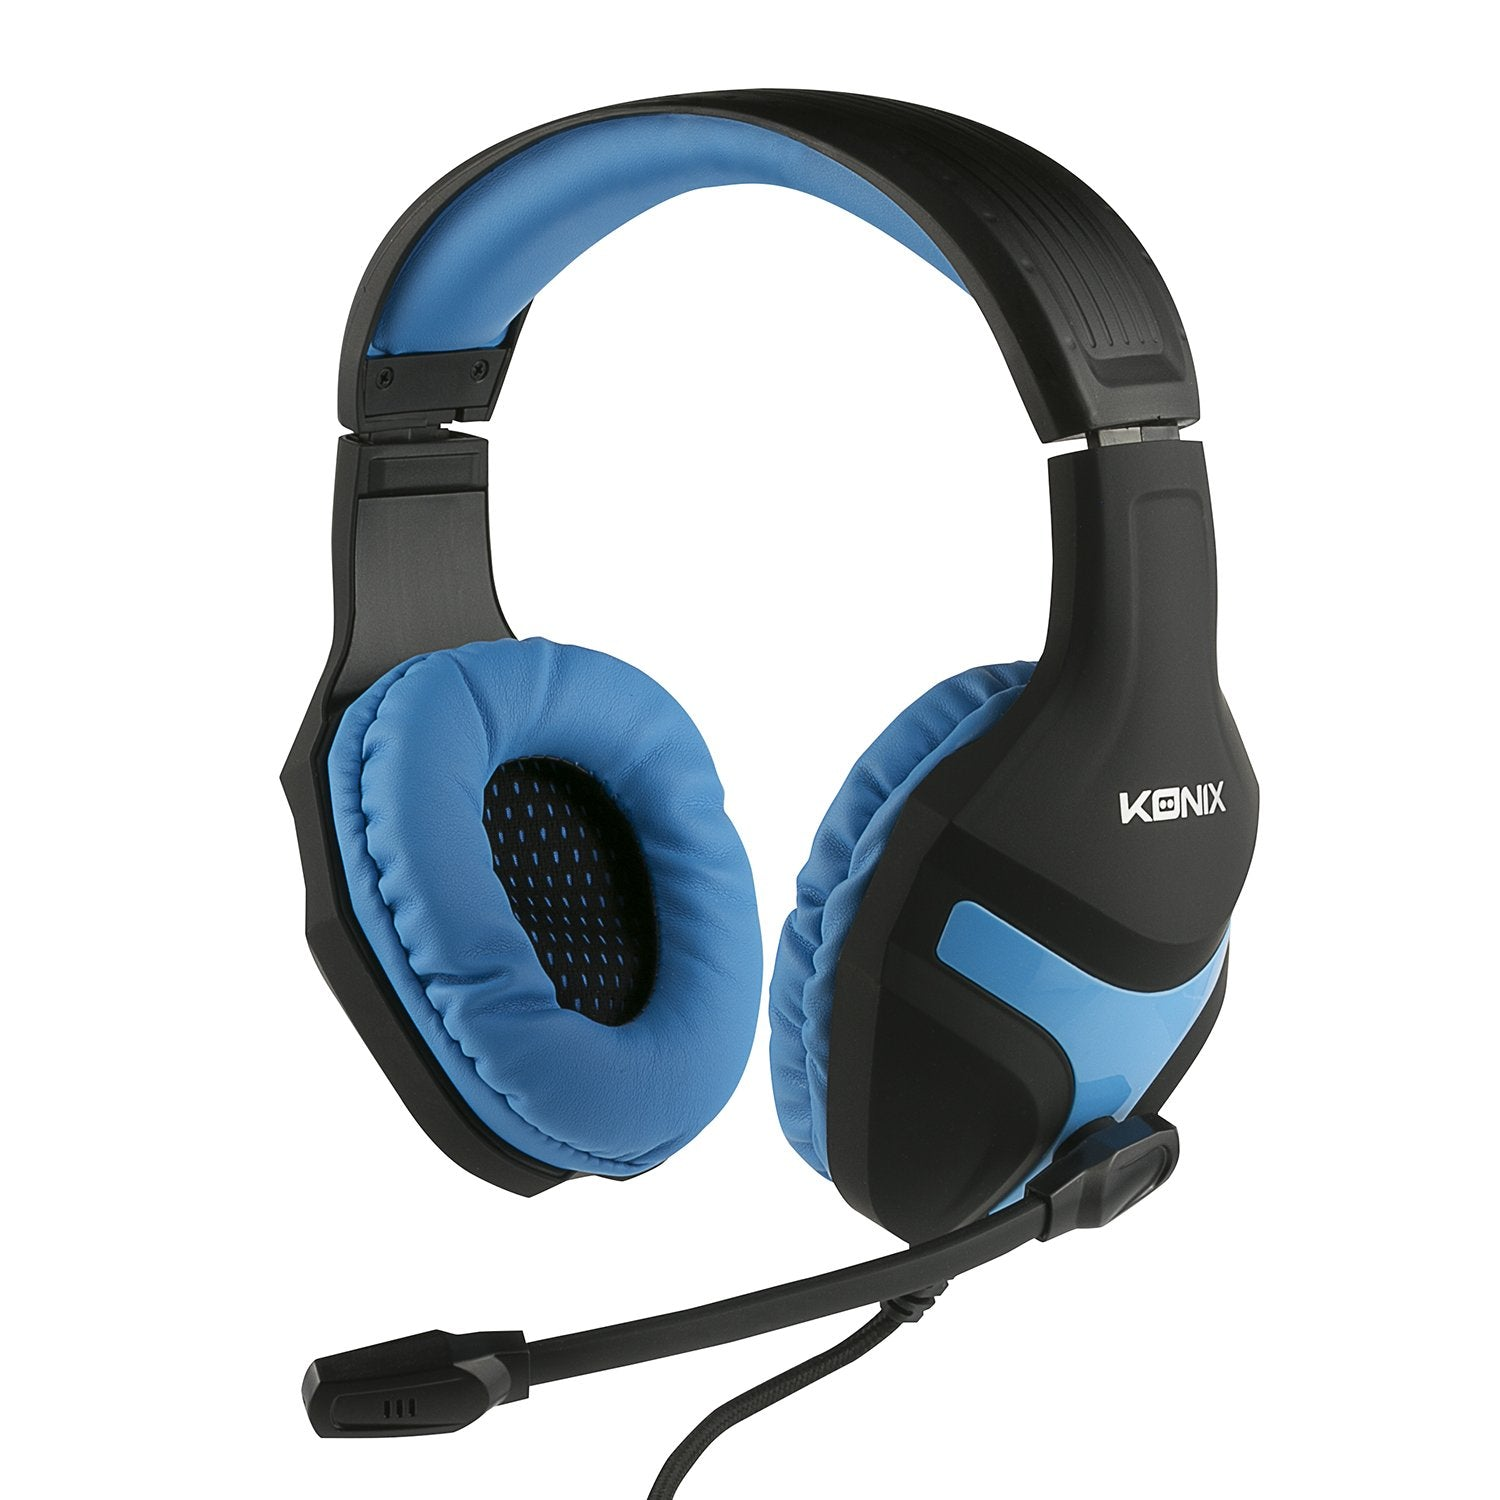 Konix Gaming Headset PS4/PC